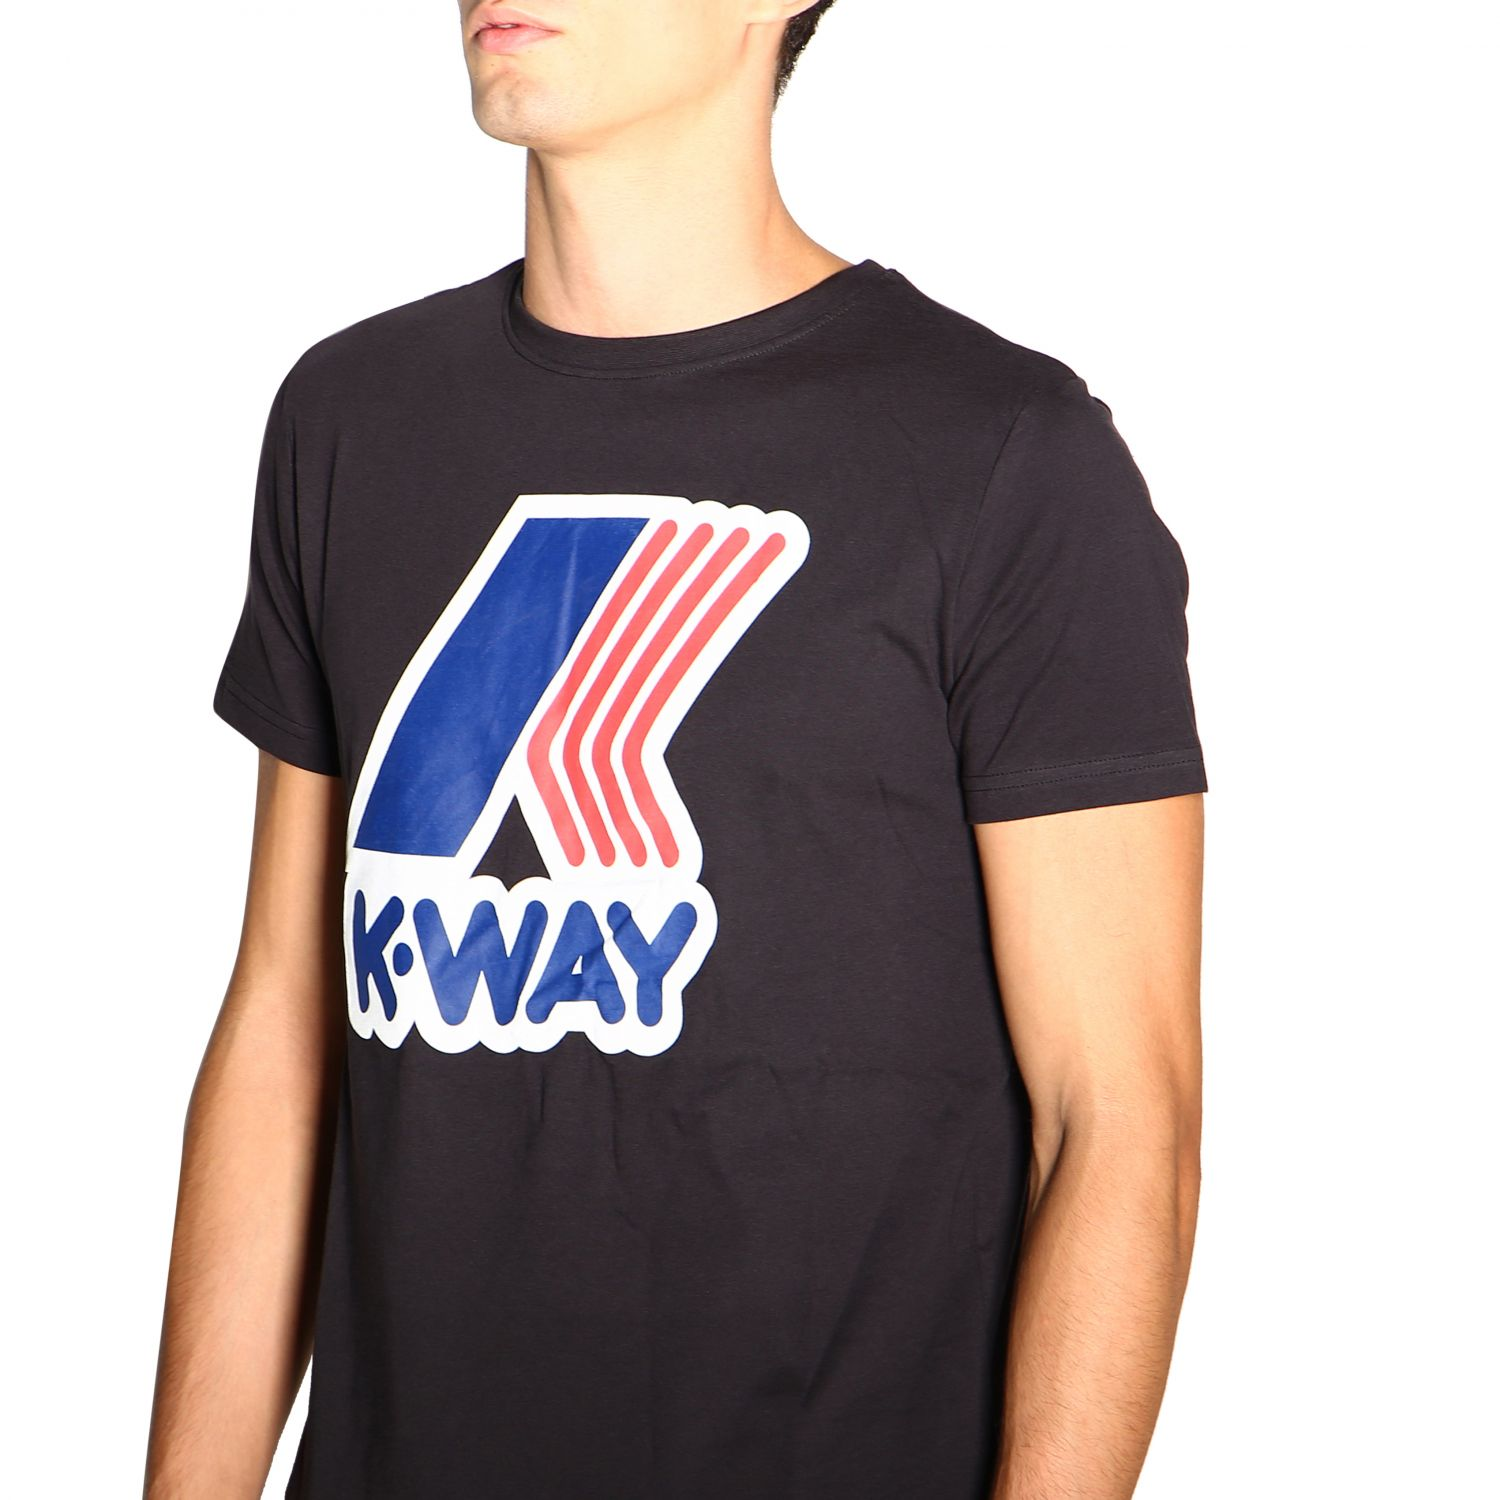 T-shirt men K-way black 5